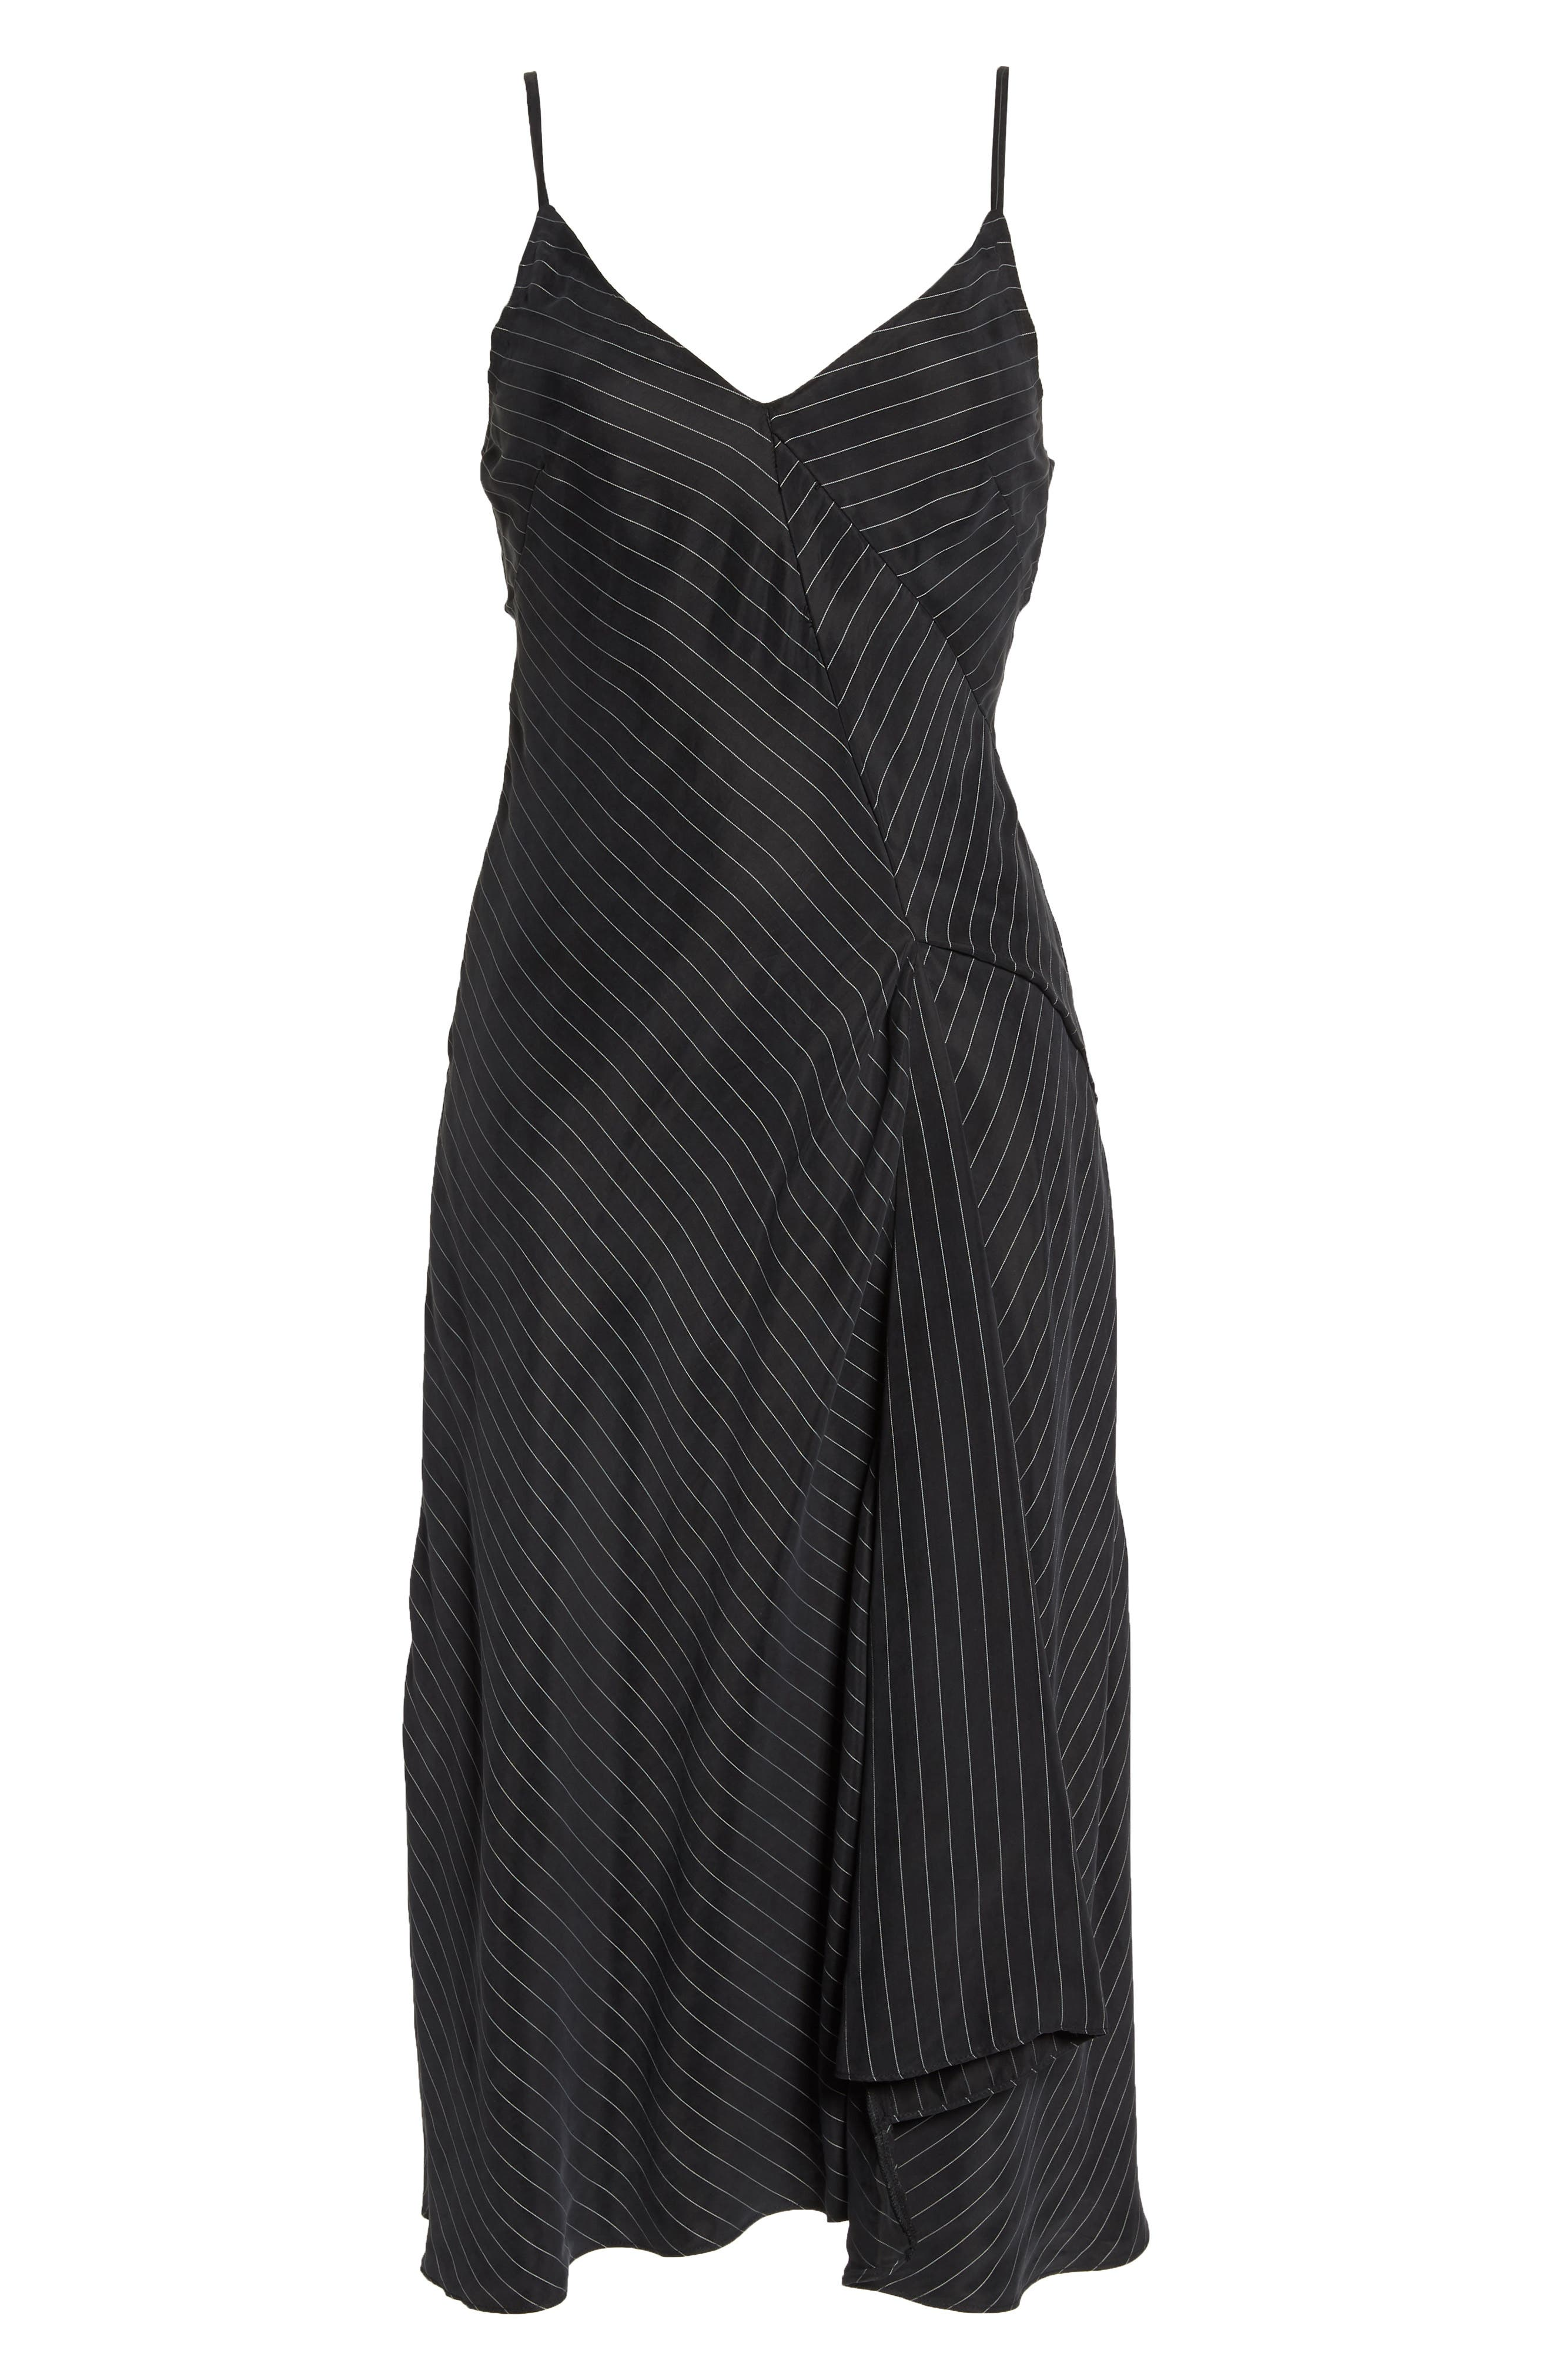 Bay Area Sleeveless Pinstripe Midi Dress,                             Alternate thumbnail 7, color,                             001